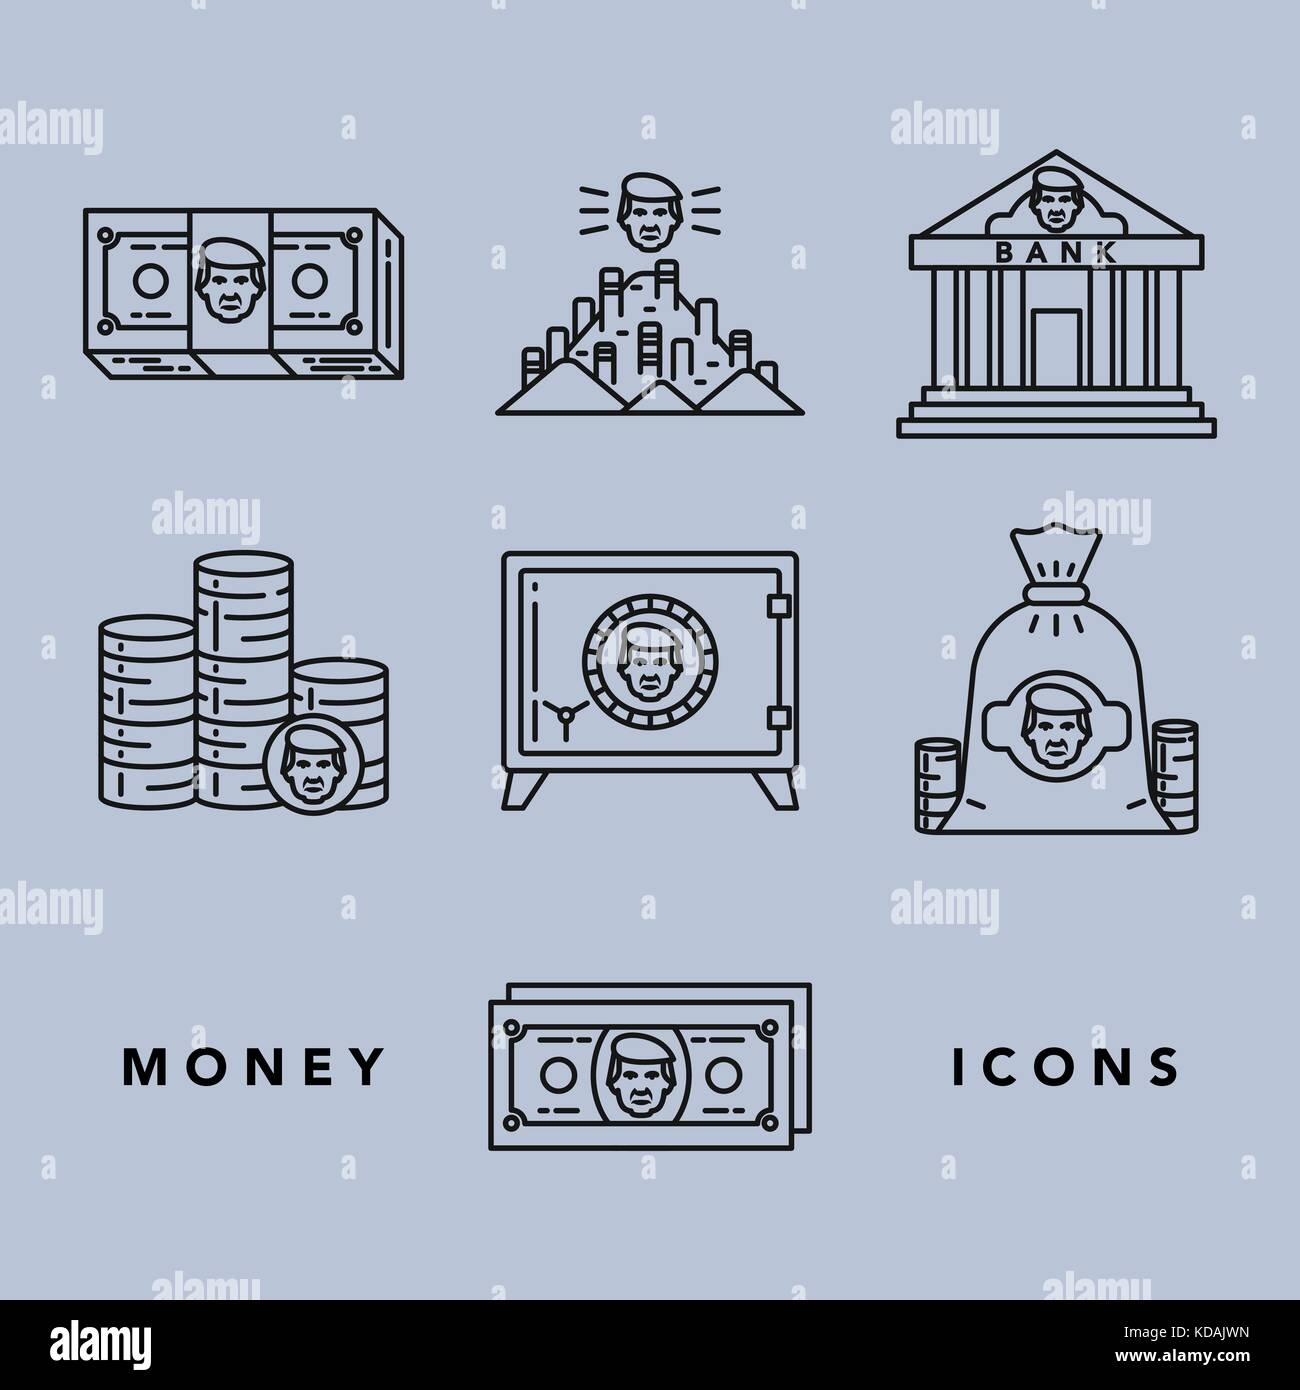 Vector icons set of money and finance attributes such as banknotes, coins, strongbox and bank on white background Stock Vector